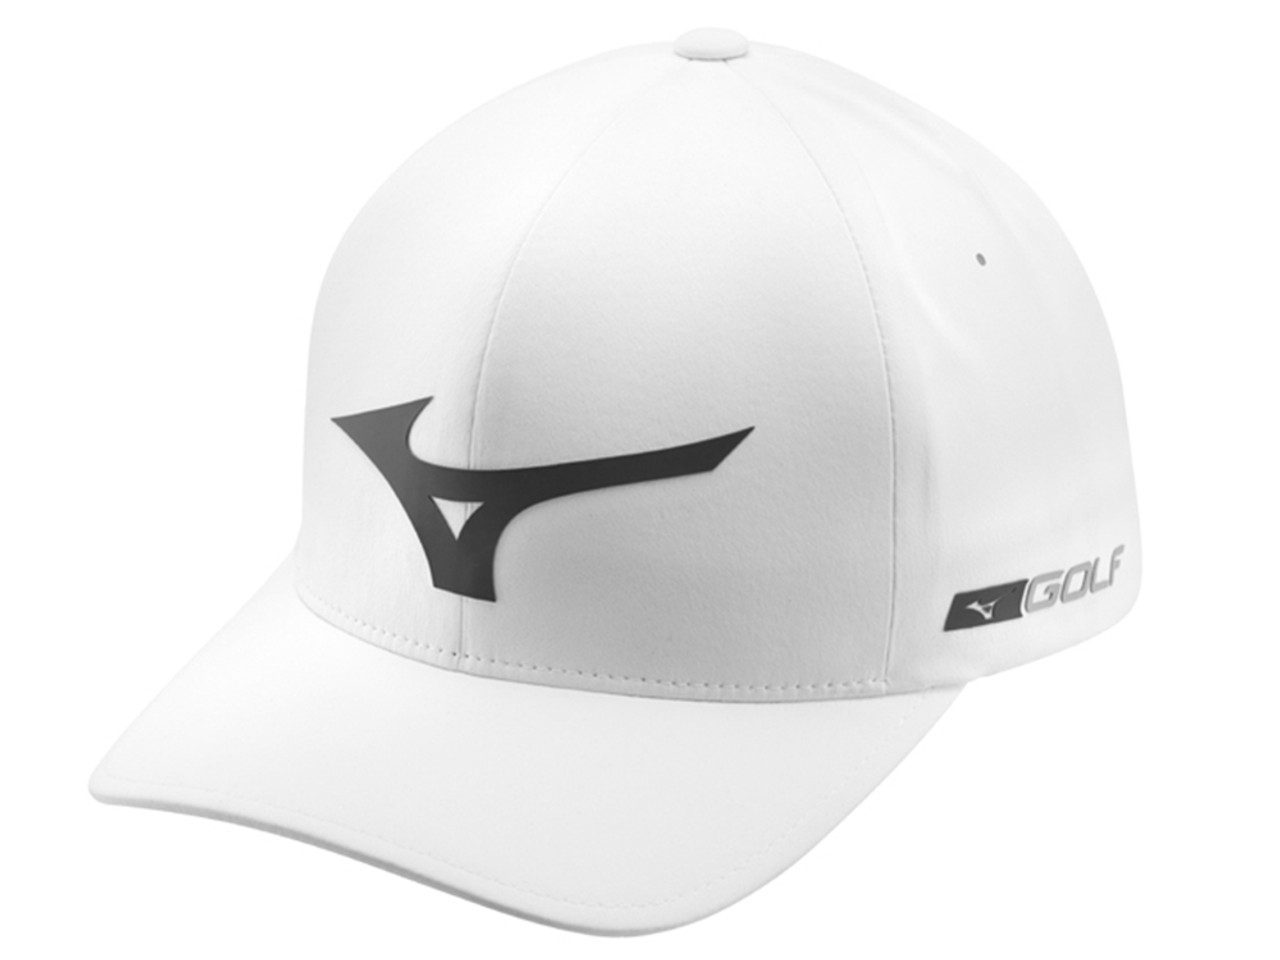 3a405b07d3449 Mizuno Tour Delta Cap - White - Mens - Polyester For Sale